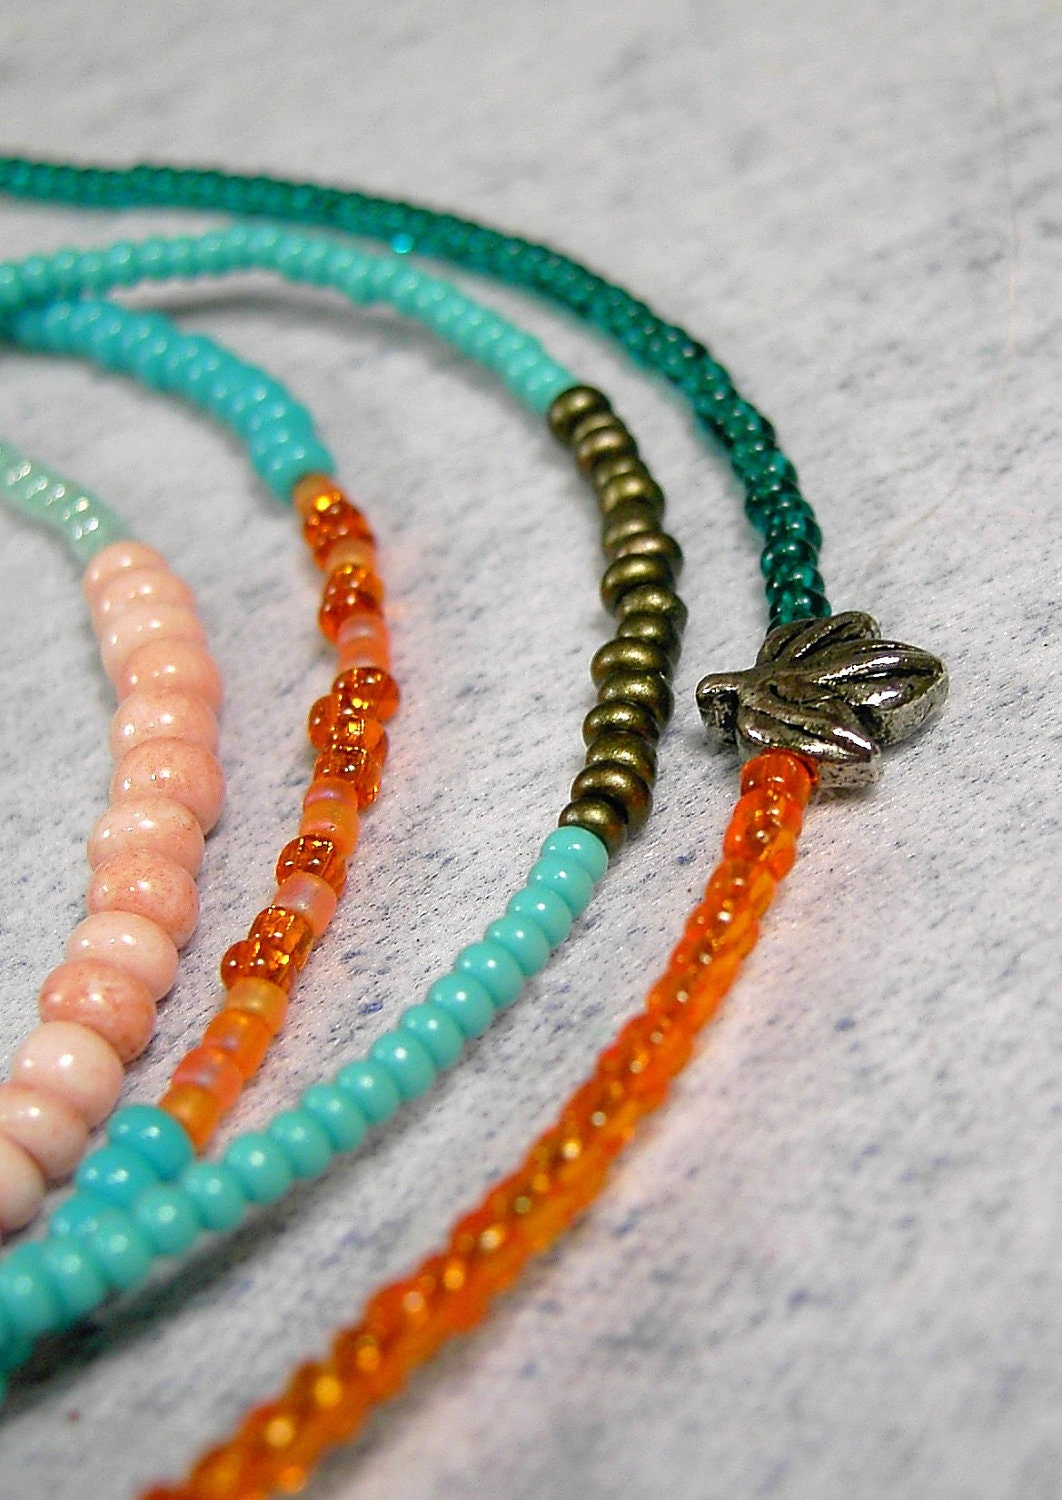 Beaded Bracelet Seed Bead Friendship bracelet Tangerine Orange and Teal Layer with Leaf - CarolEJewelry